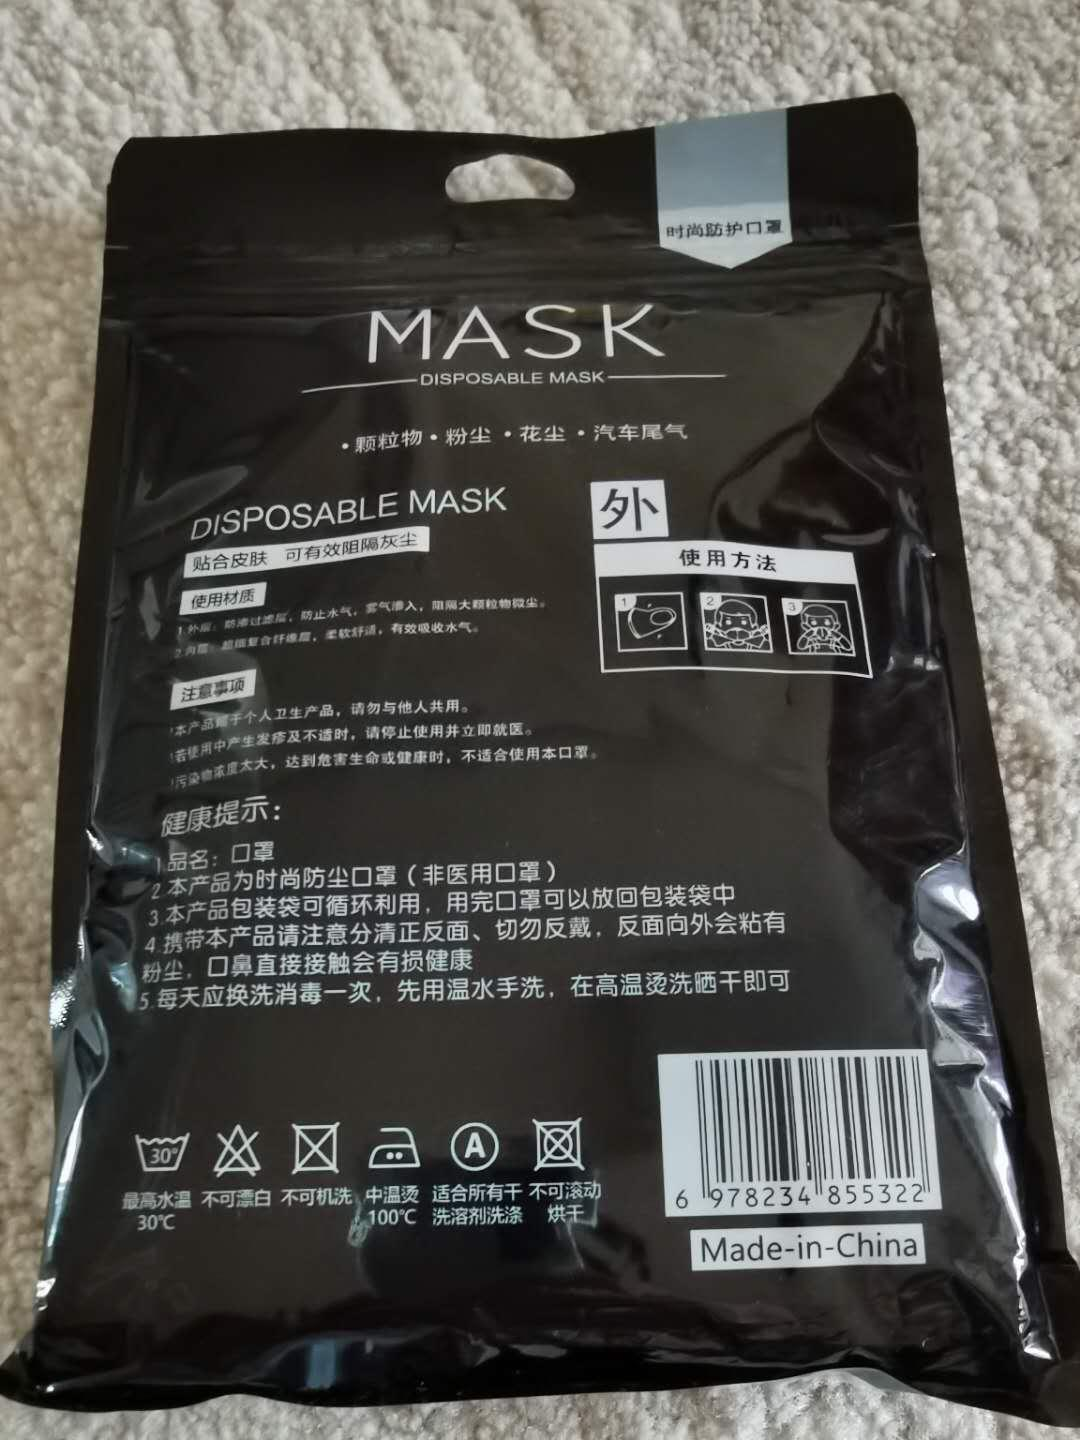 Cotton Masks Dust Black No Protective PM2.5 Reusable Anti Mask Fog Filters Haze Anti Respirator Washable Breathing Mouth Face Adult Val Gsmh